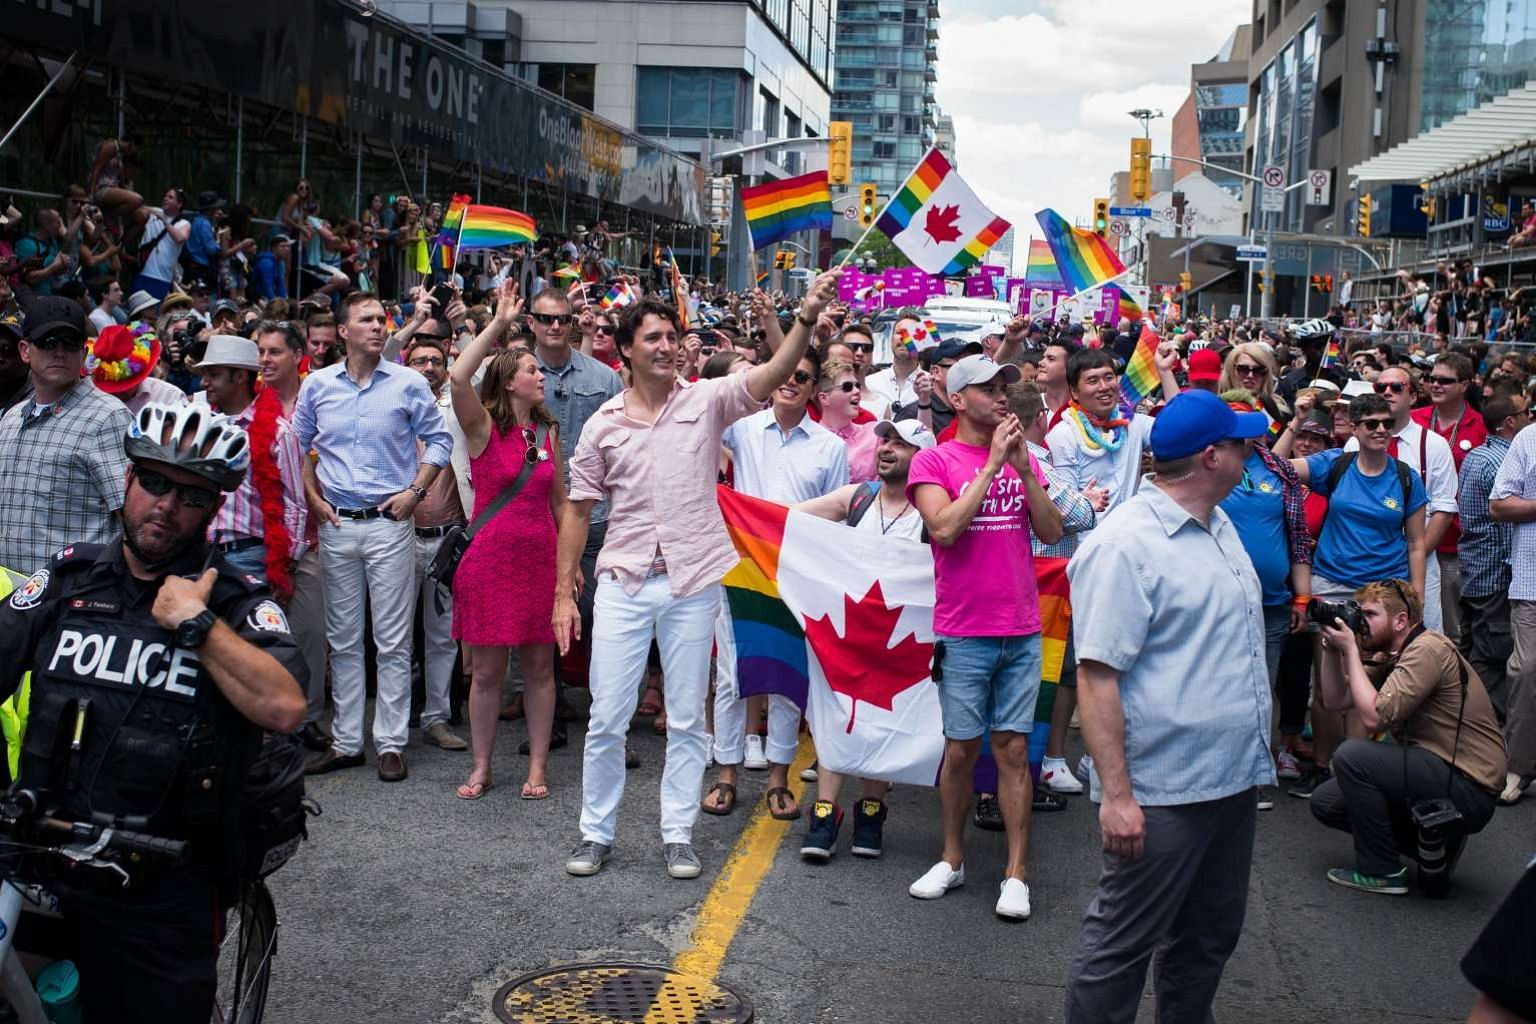 Canadian PM Justin Trudeau (middle, in pink shirt and white trousers) marching in the Pride Festival parade on July 3, 2016 in Toronto.